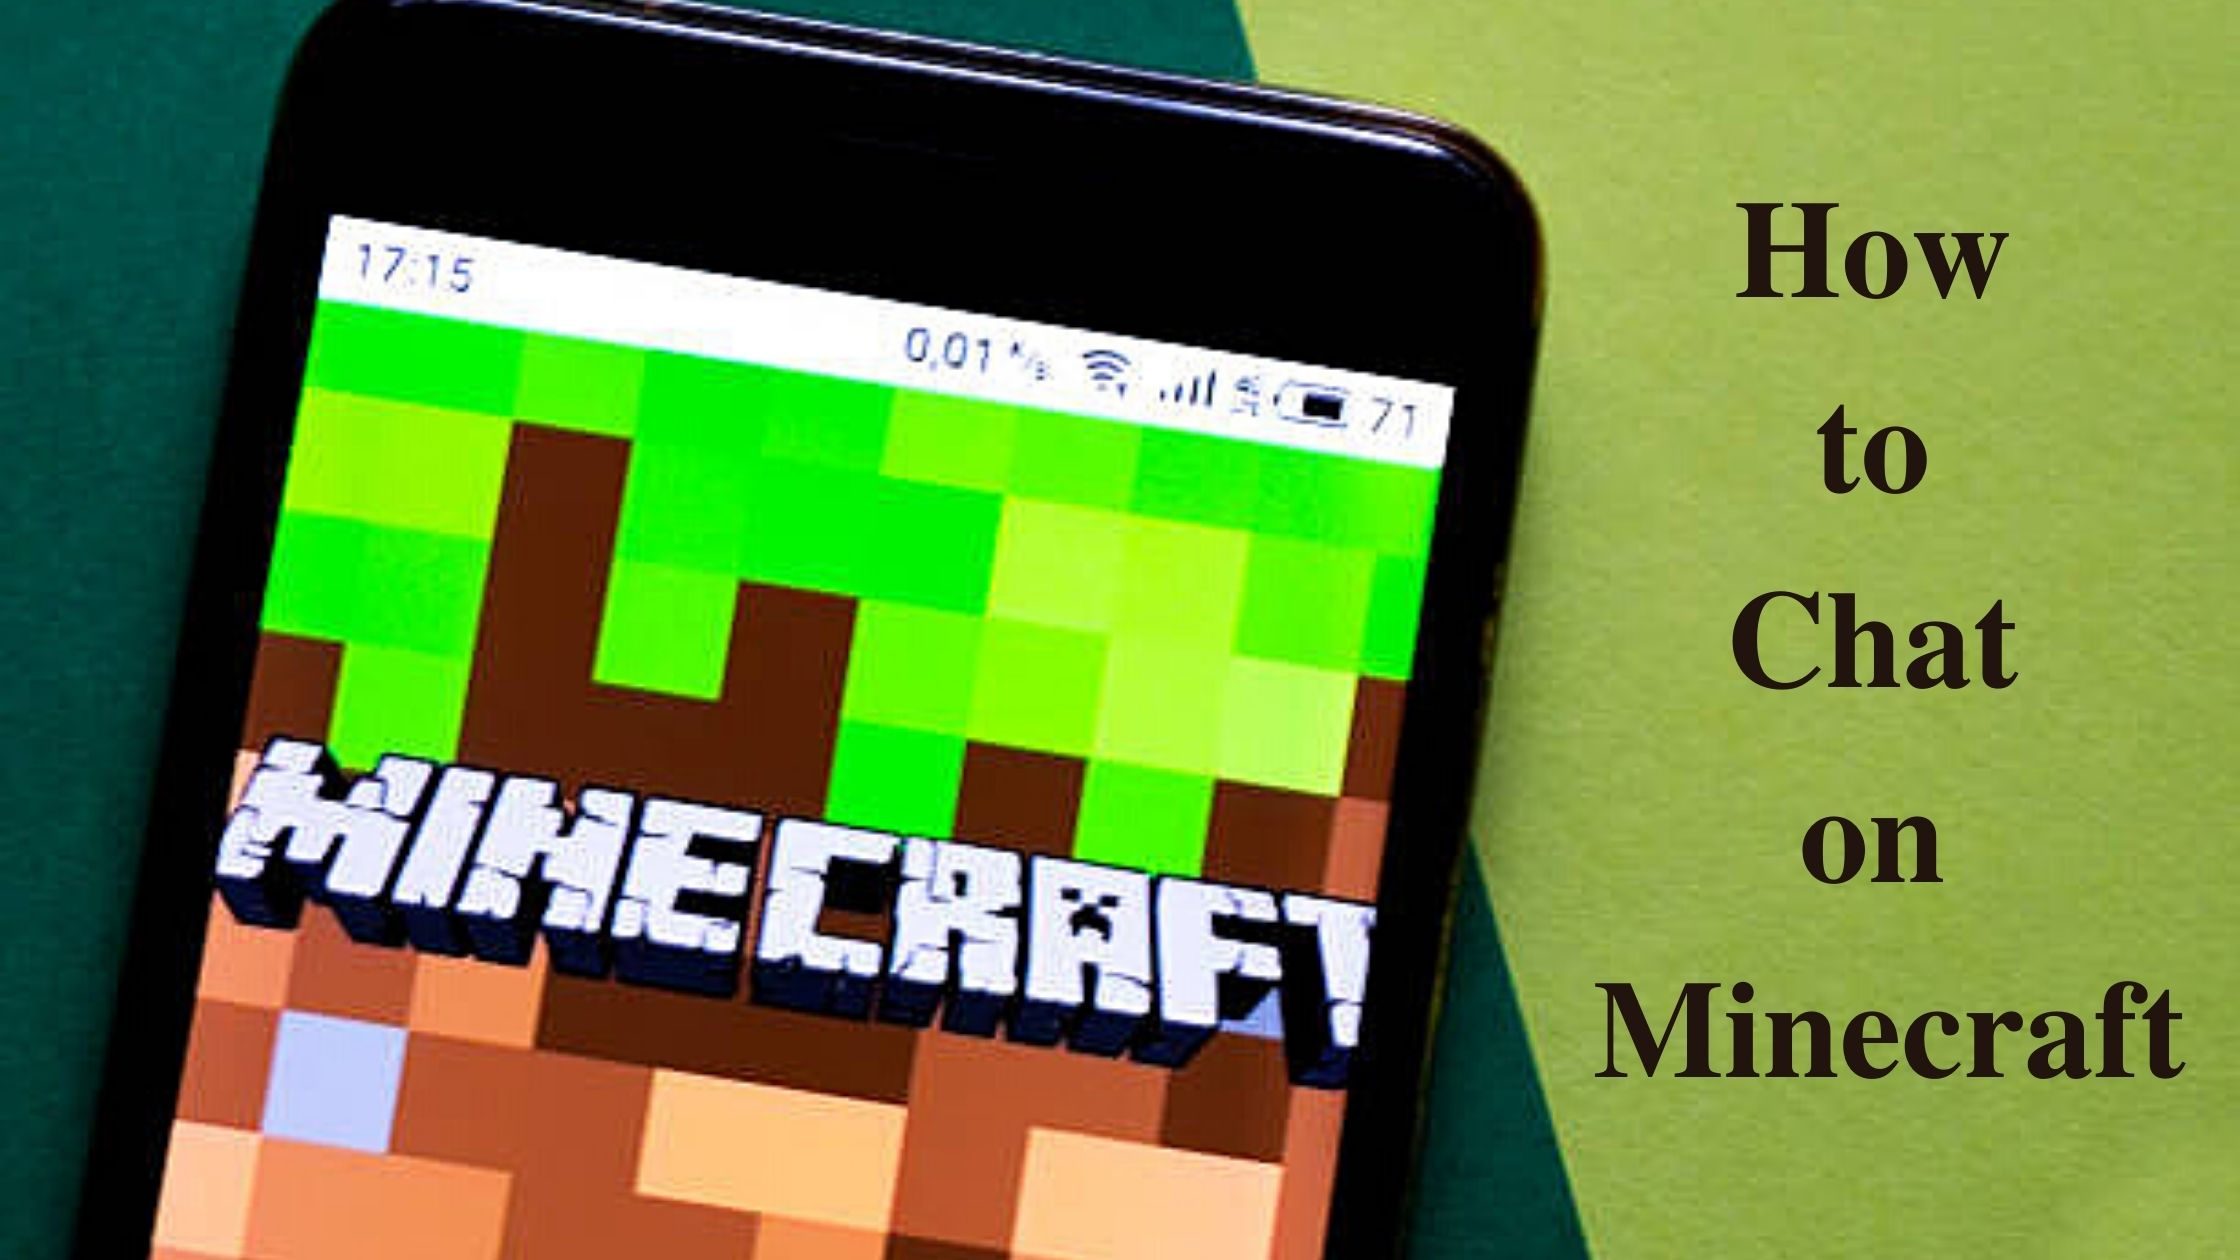 How to chat on Minecraft